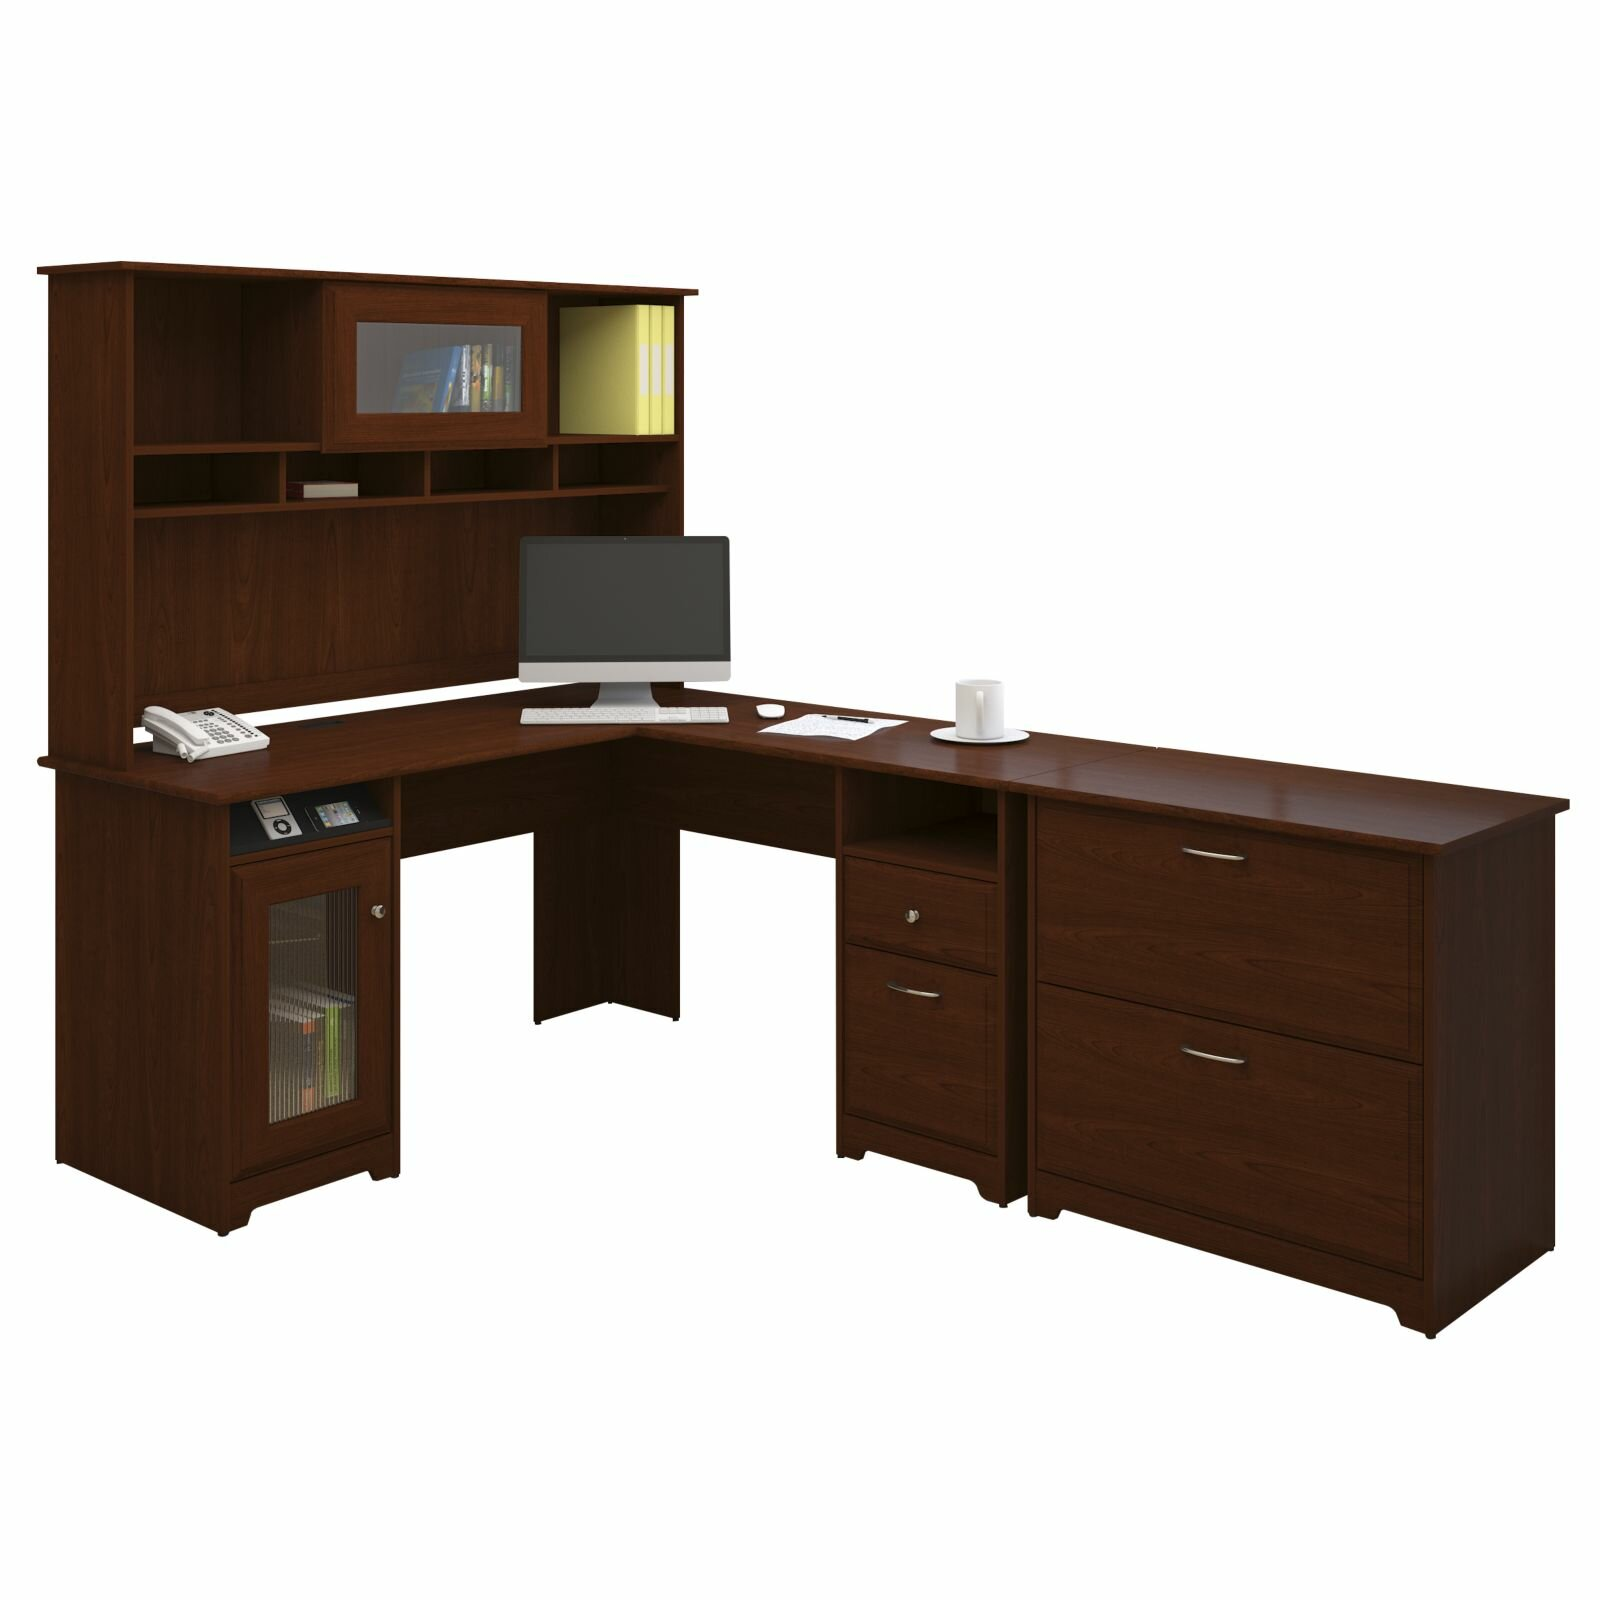 bathroommesmerizing wood staples office furniture desk hutch shaped executive desk sets office suites u shape bathroommesmerizing awesome desk furniture bush